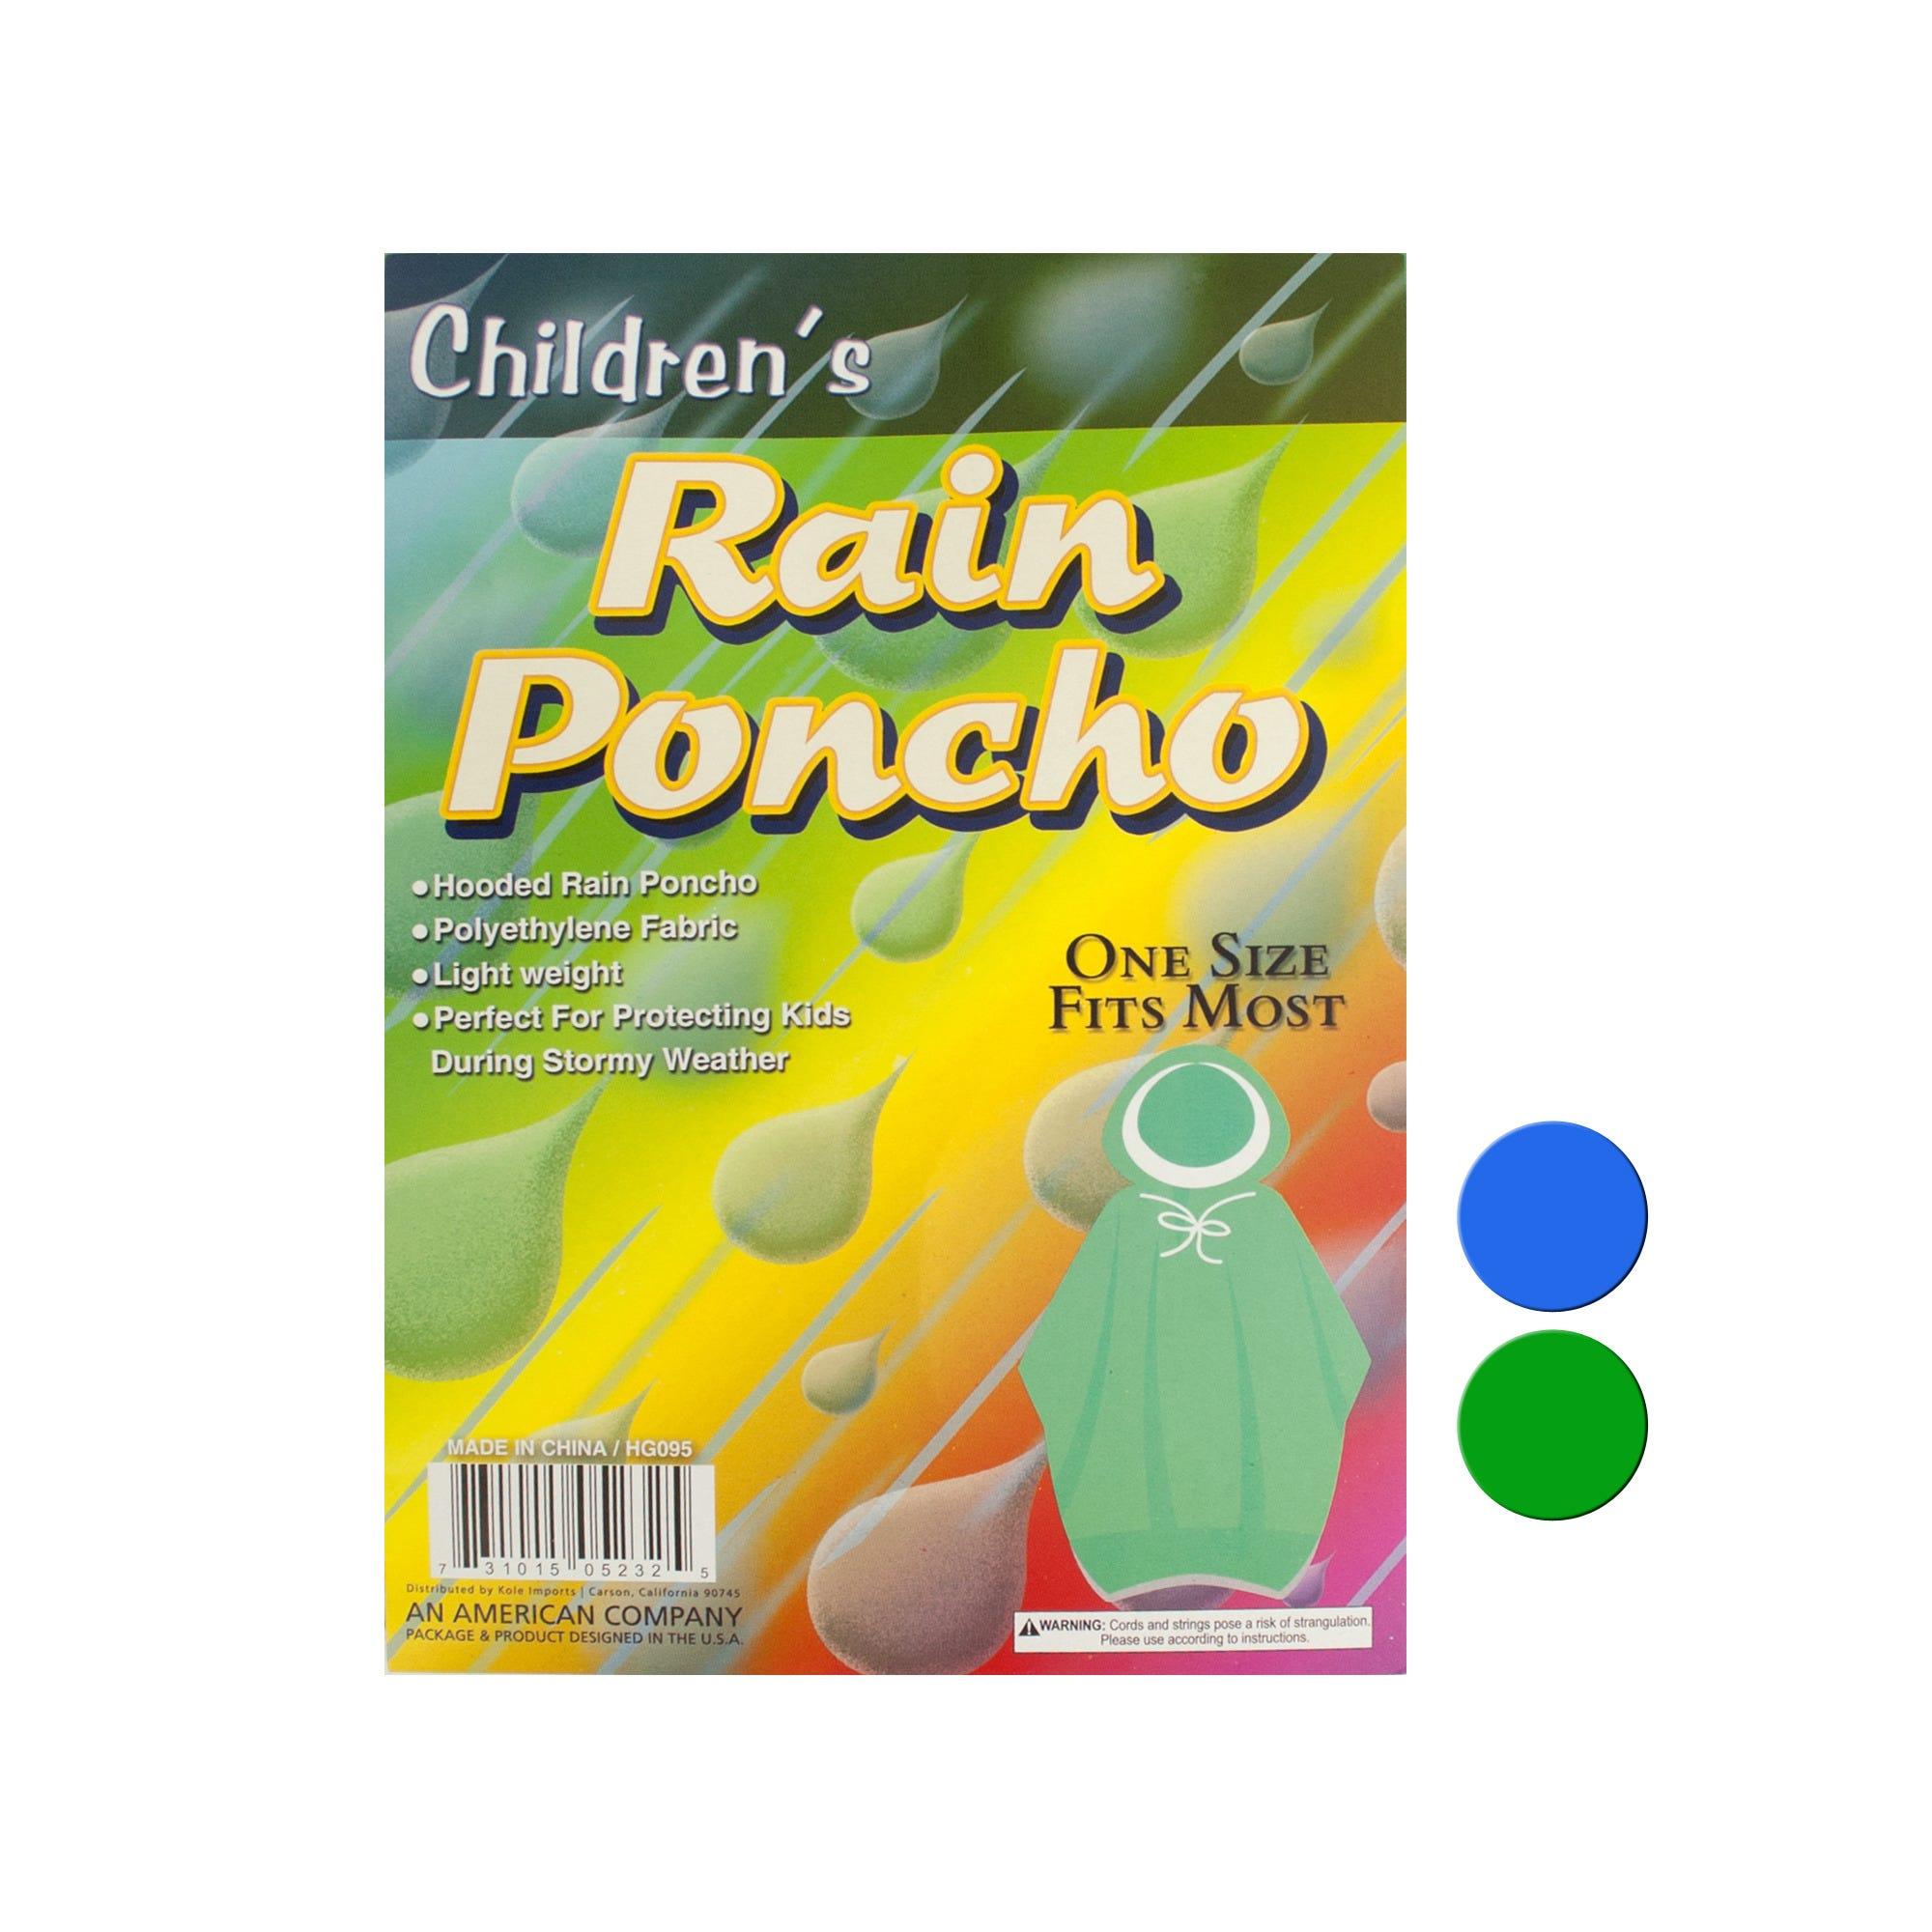 Children's Hooded Rain PONCHO- Qty 24